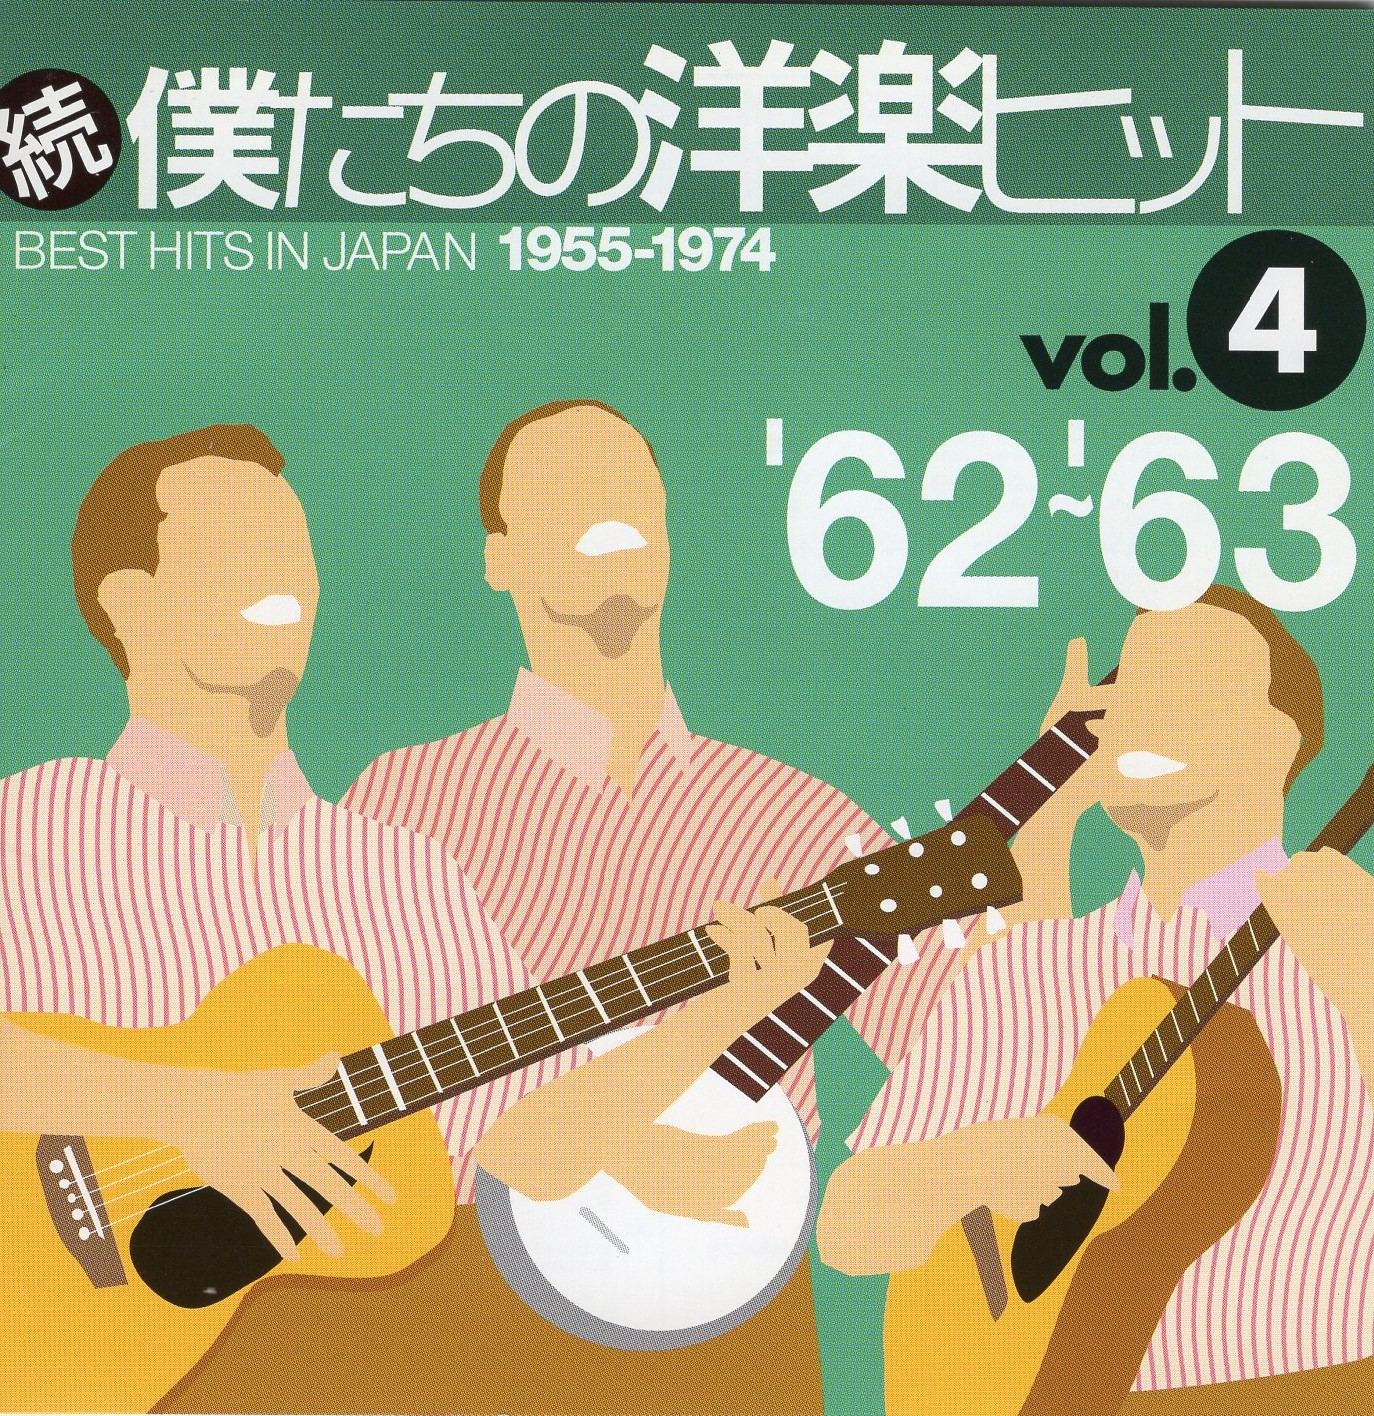 """The Best Hits in Japan 1955-1974 Vol.4"""